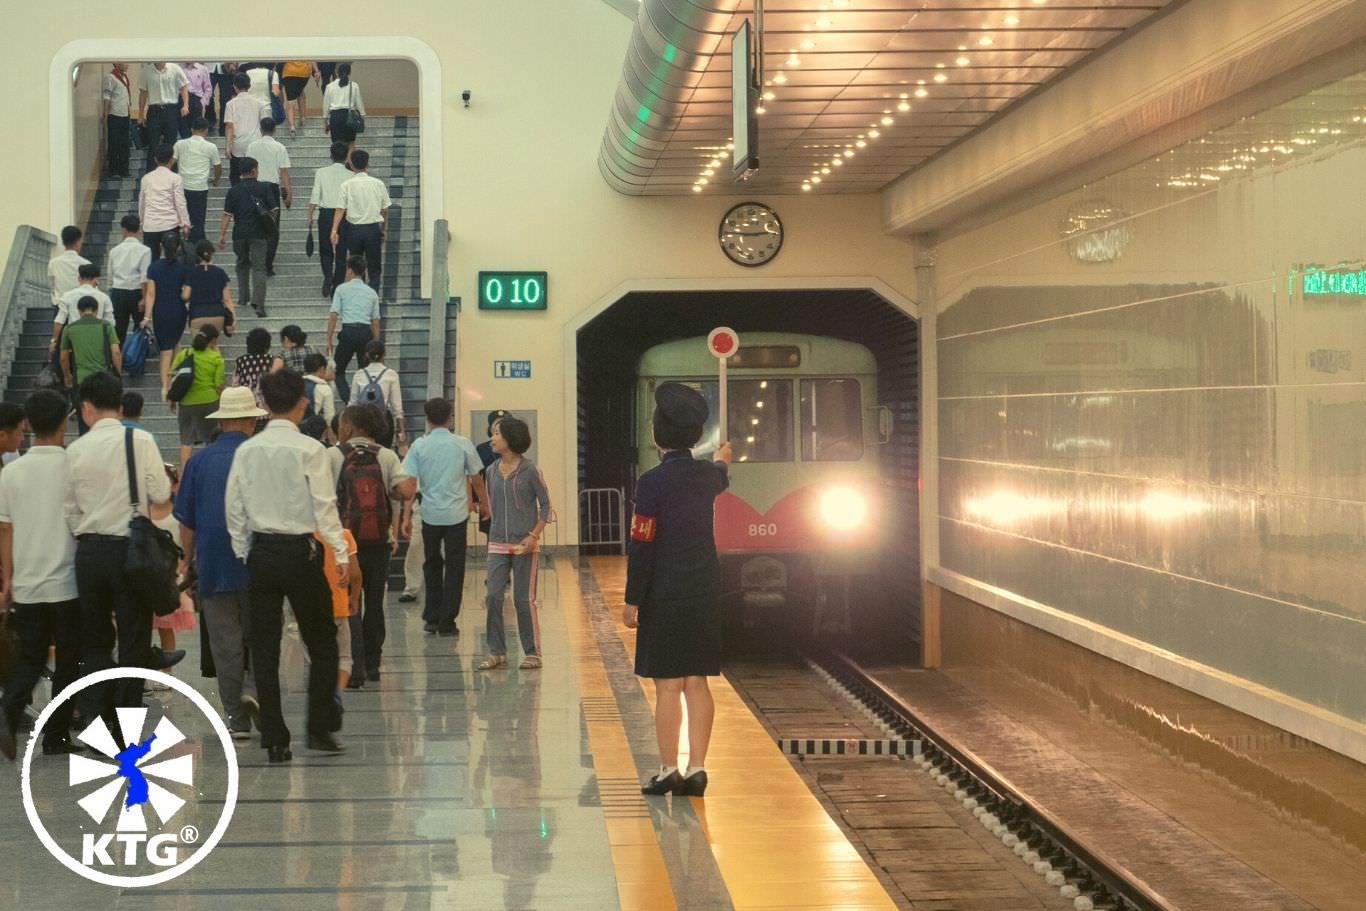 Passengers at a metro stop in Pyongyang, North Korea. Tour arranged by KTG®